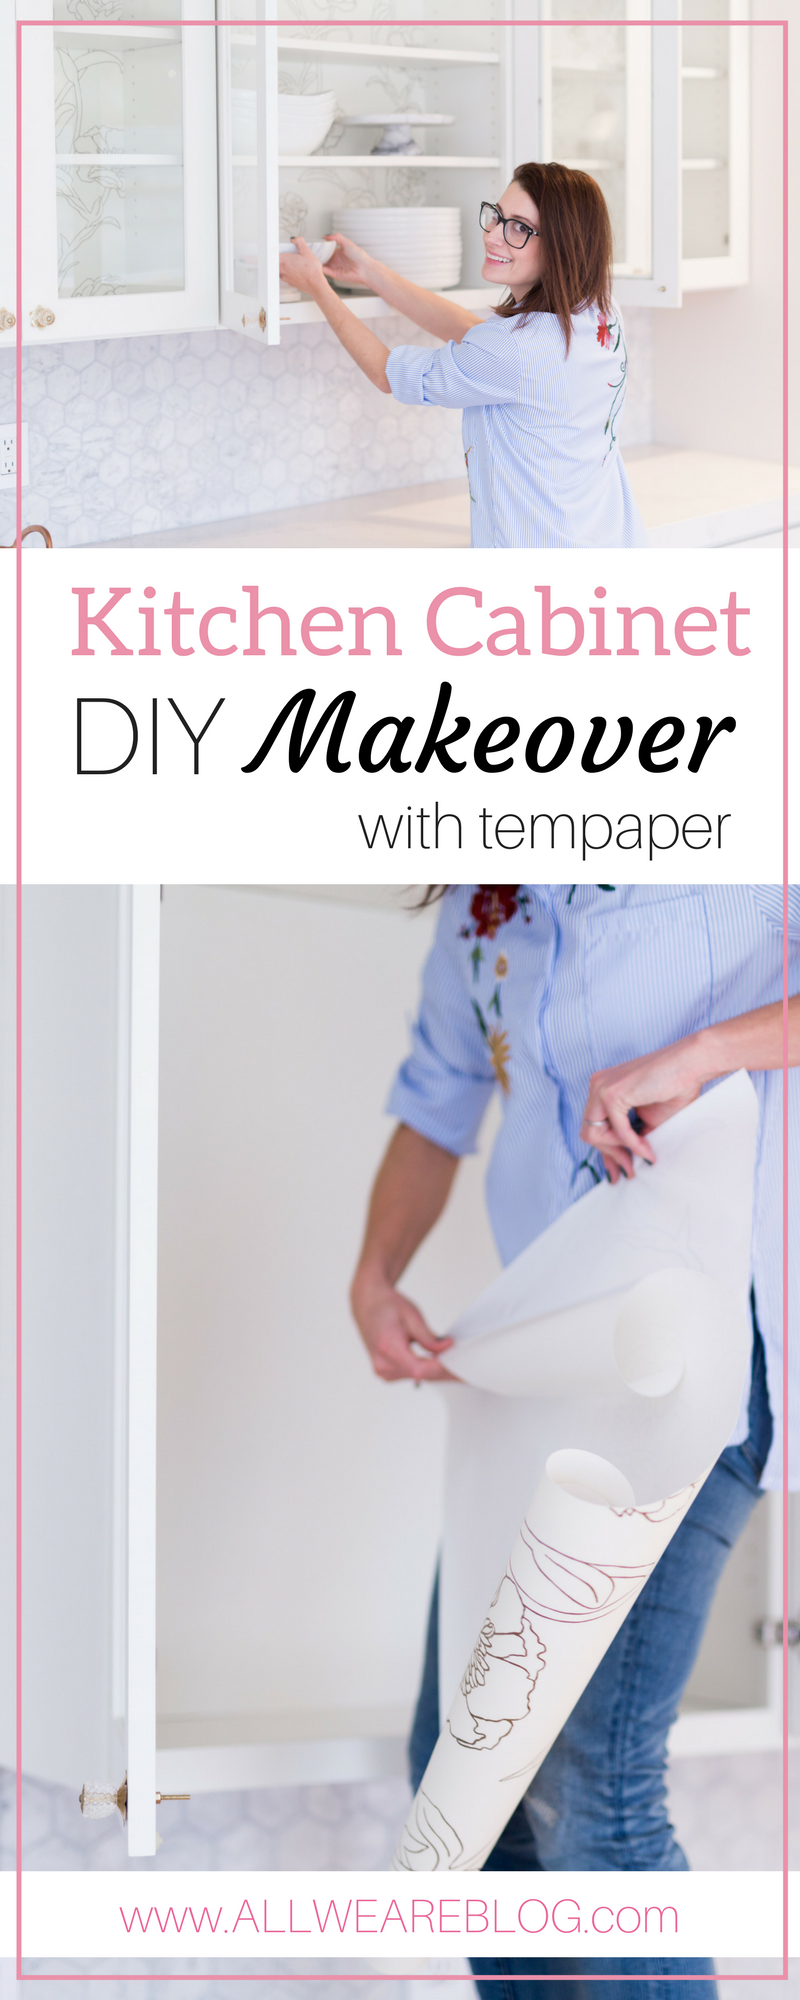 kitchen cabinet diy makeover with tempaper